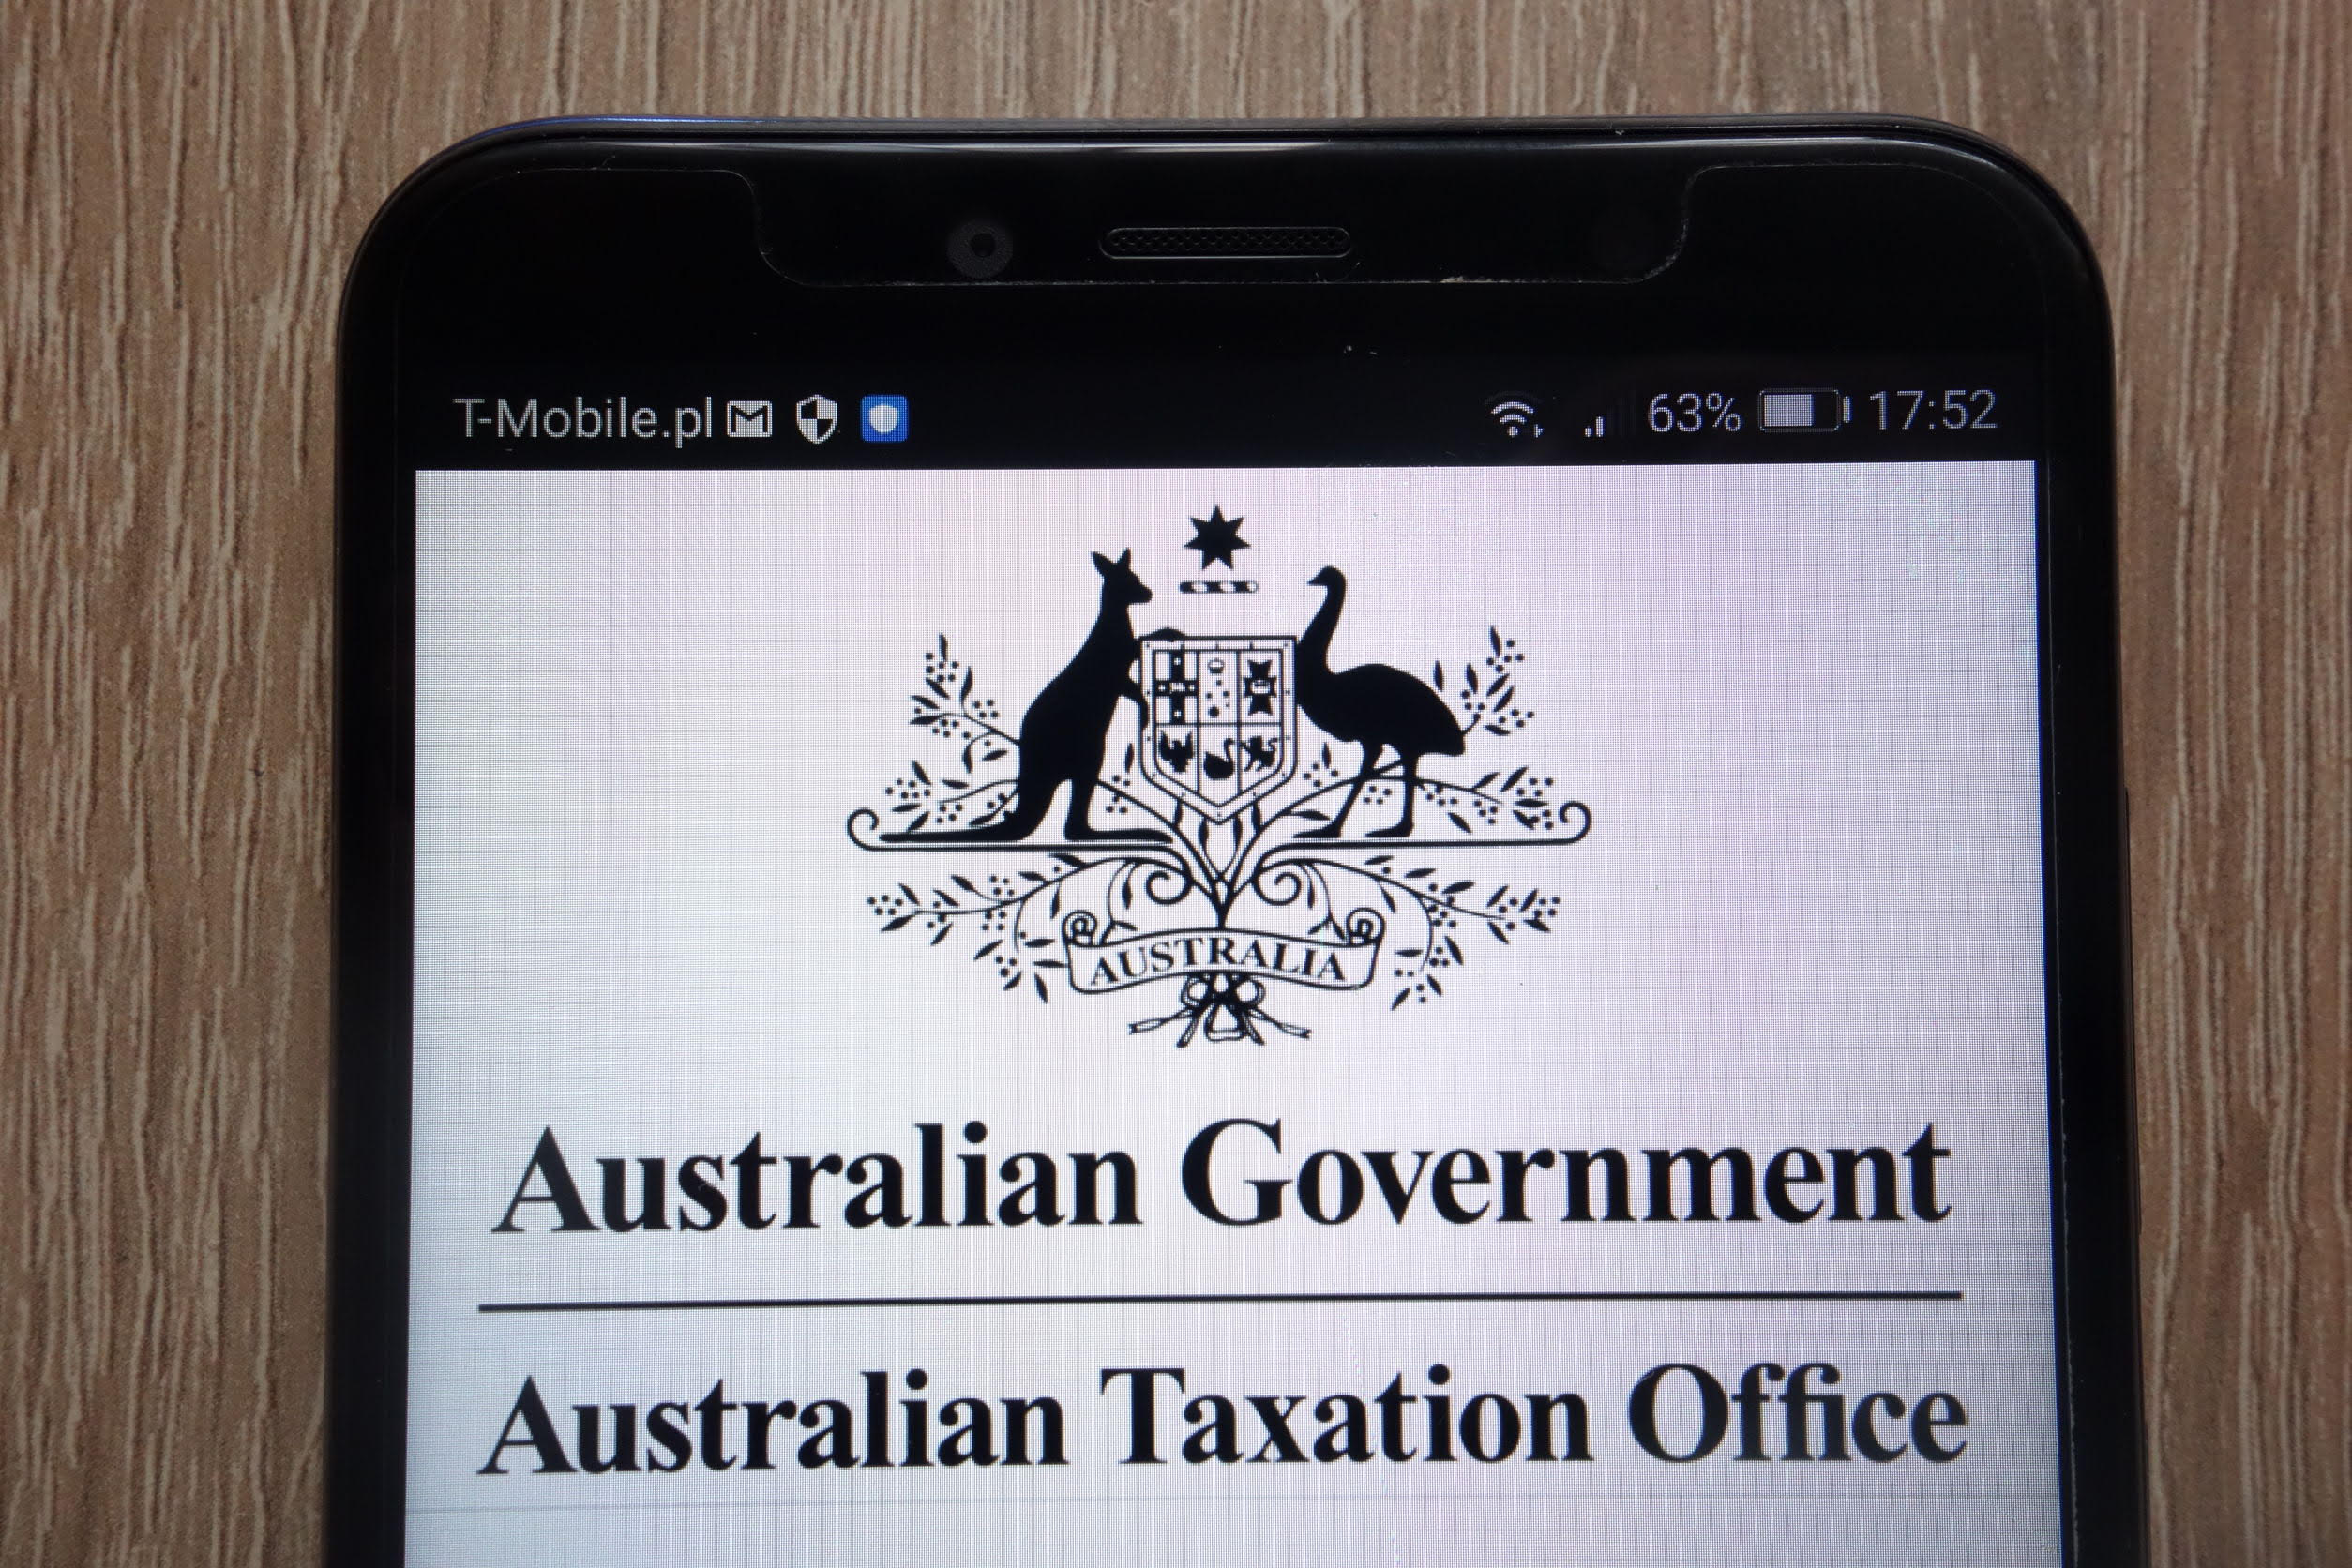 114452467 - konskie, poland - september 06, 2018: australian government - australian taxation office logo displayed on a modern smartphone